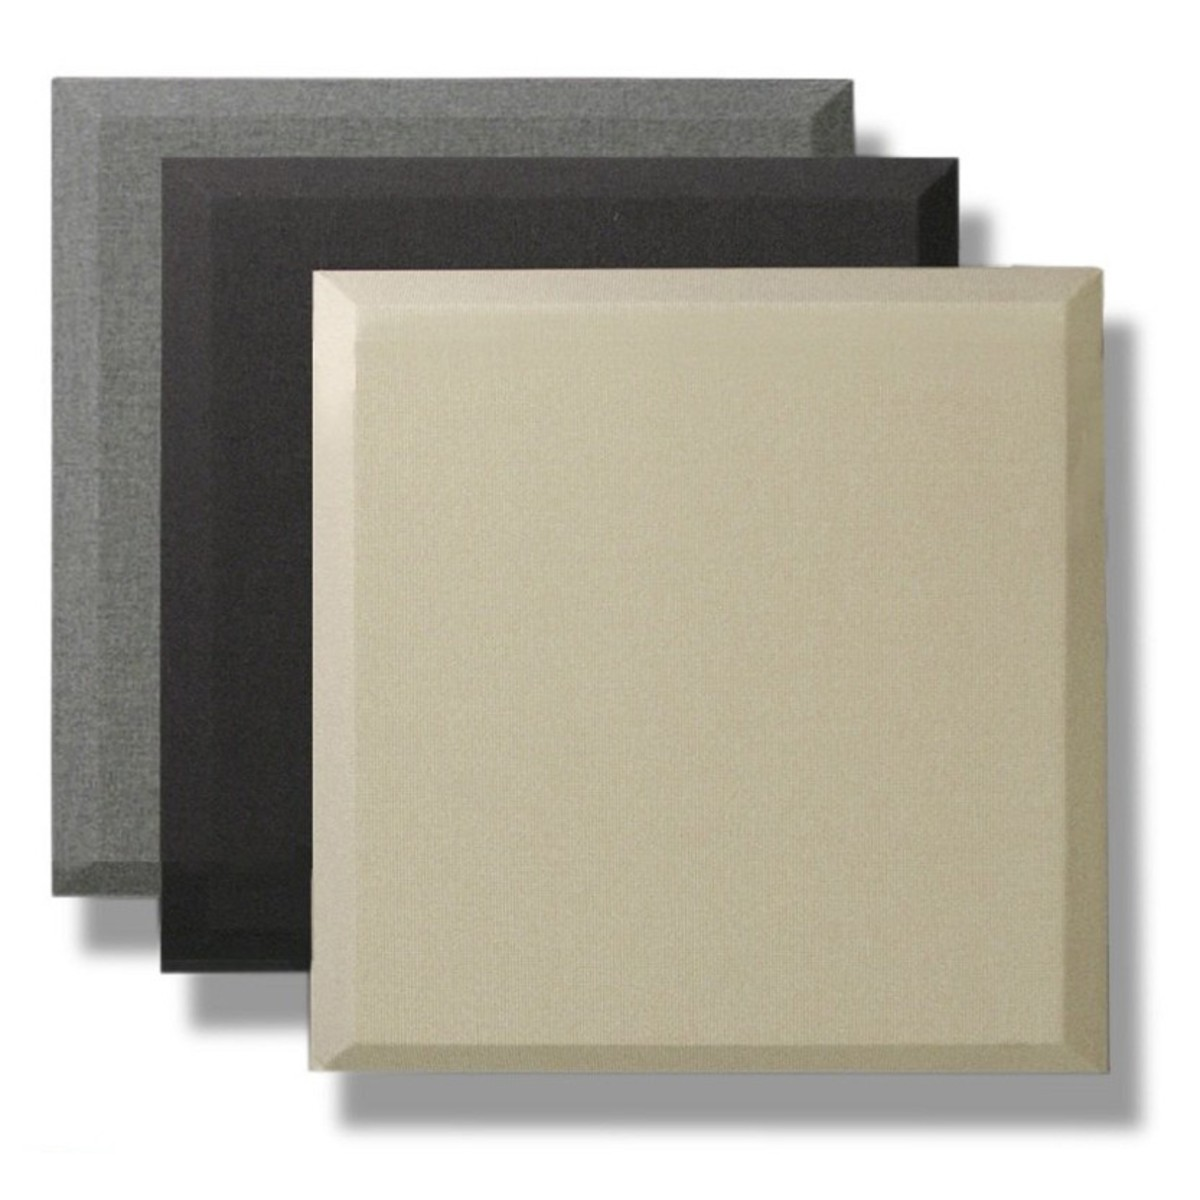 Click to view product details and reviews for Primacoustic Broadway Control Cubes 2 Square Edge Beige 12 Pack.